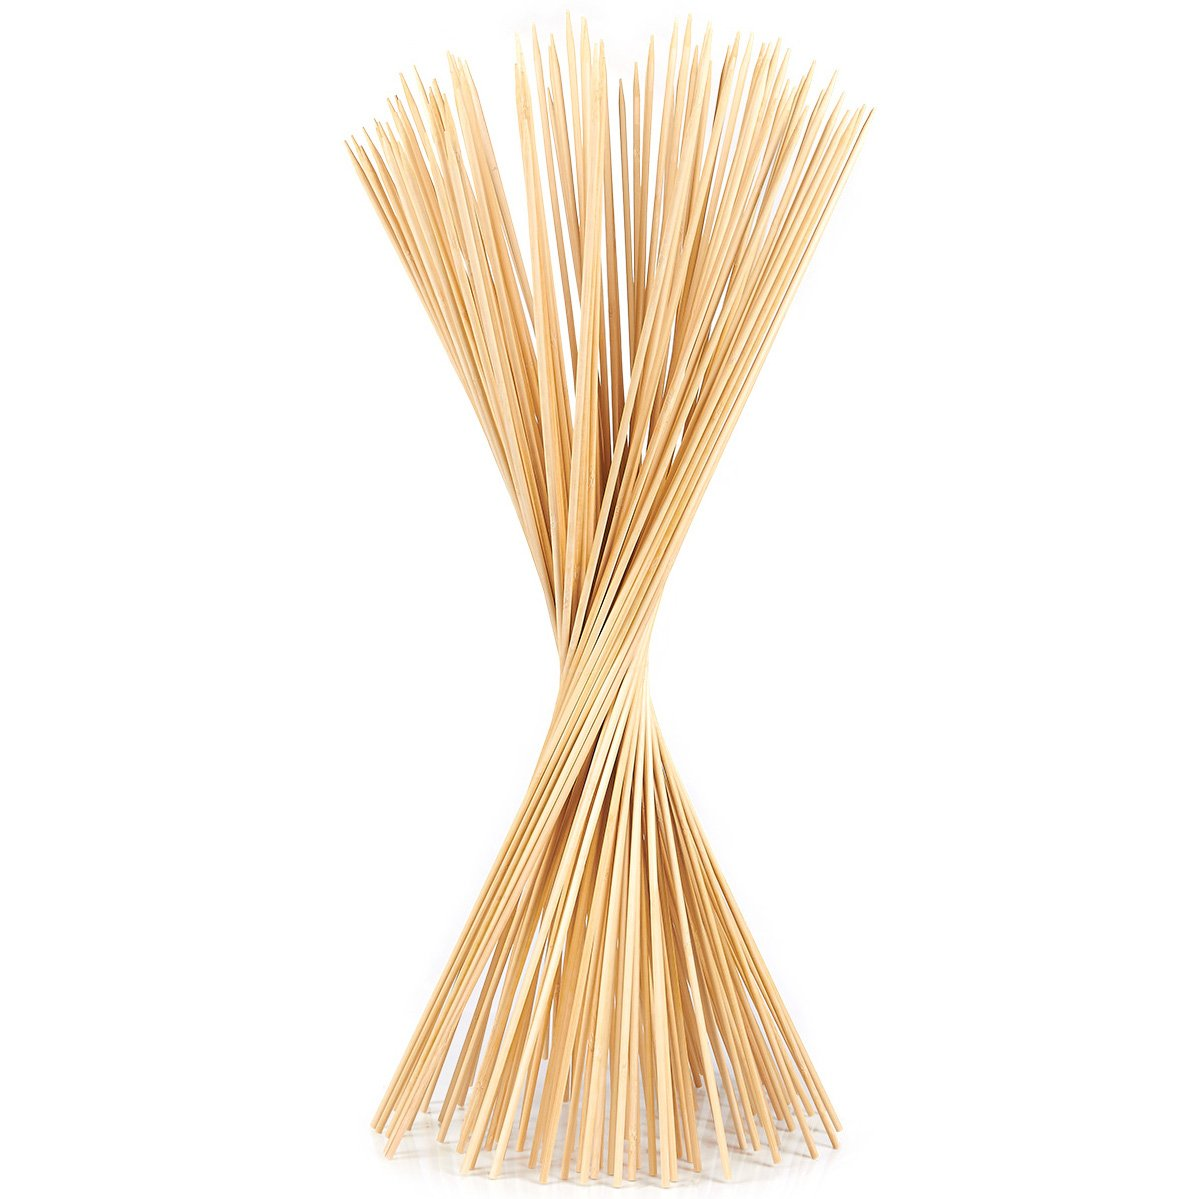 Juvale BBQ Bamboo Skewers - 100-Piece Roasting Sticks Shish Kabob, Marshmallows, Fondue, Barbecue Shrimp, Grill More - 29.7 x 0.19 Inches